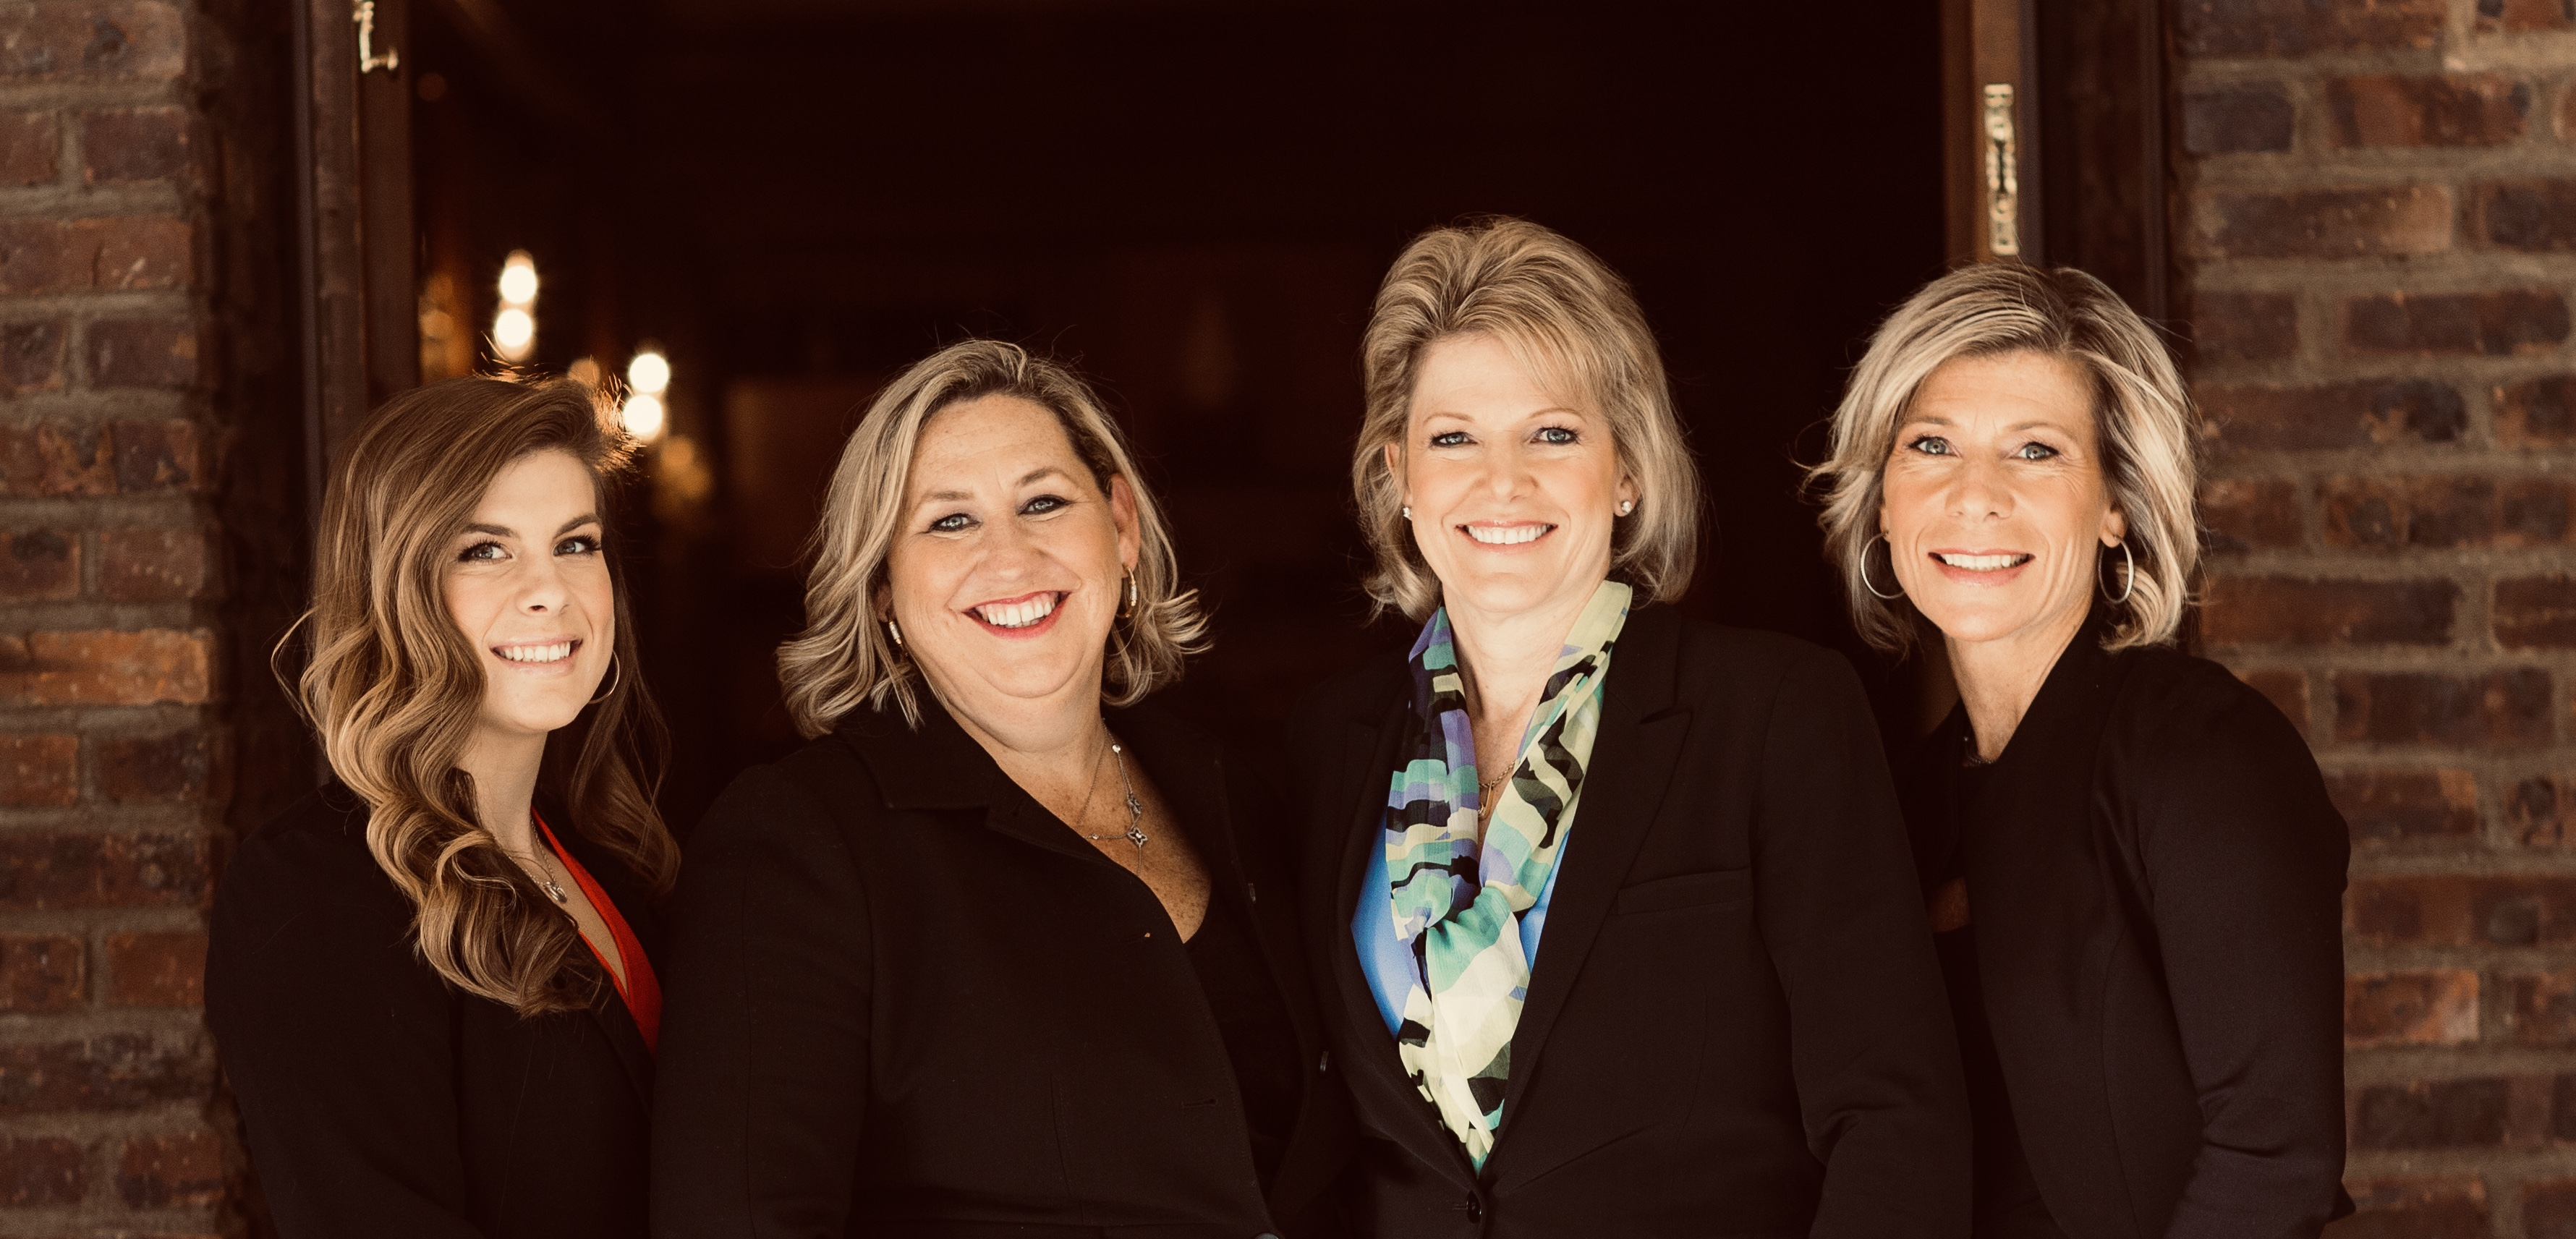 CW Wealth Management Group Caroline Marie Chahalis, Ginger Louise Ward, Tina L. Pairo, Shelby Faye Tennant